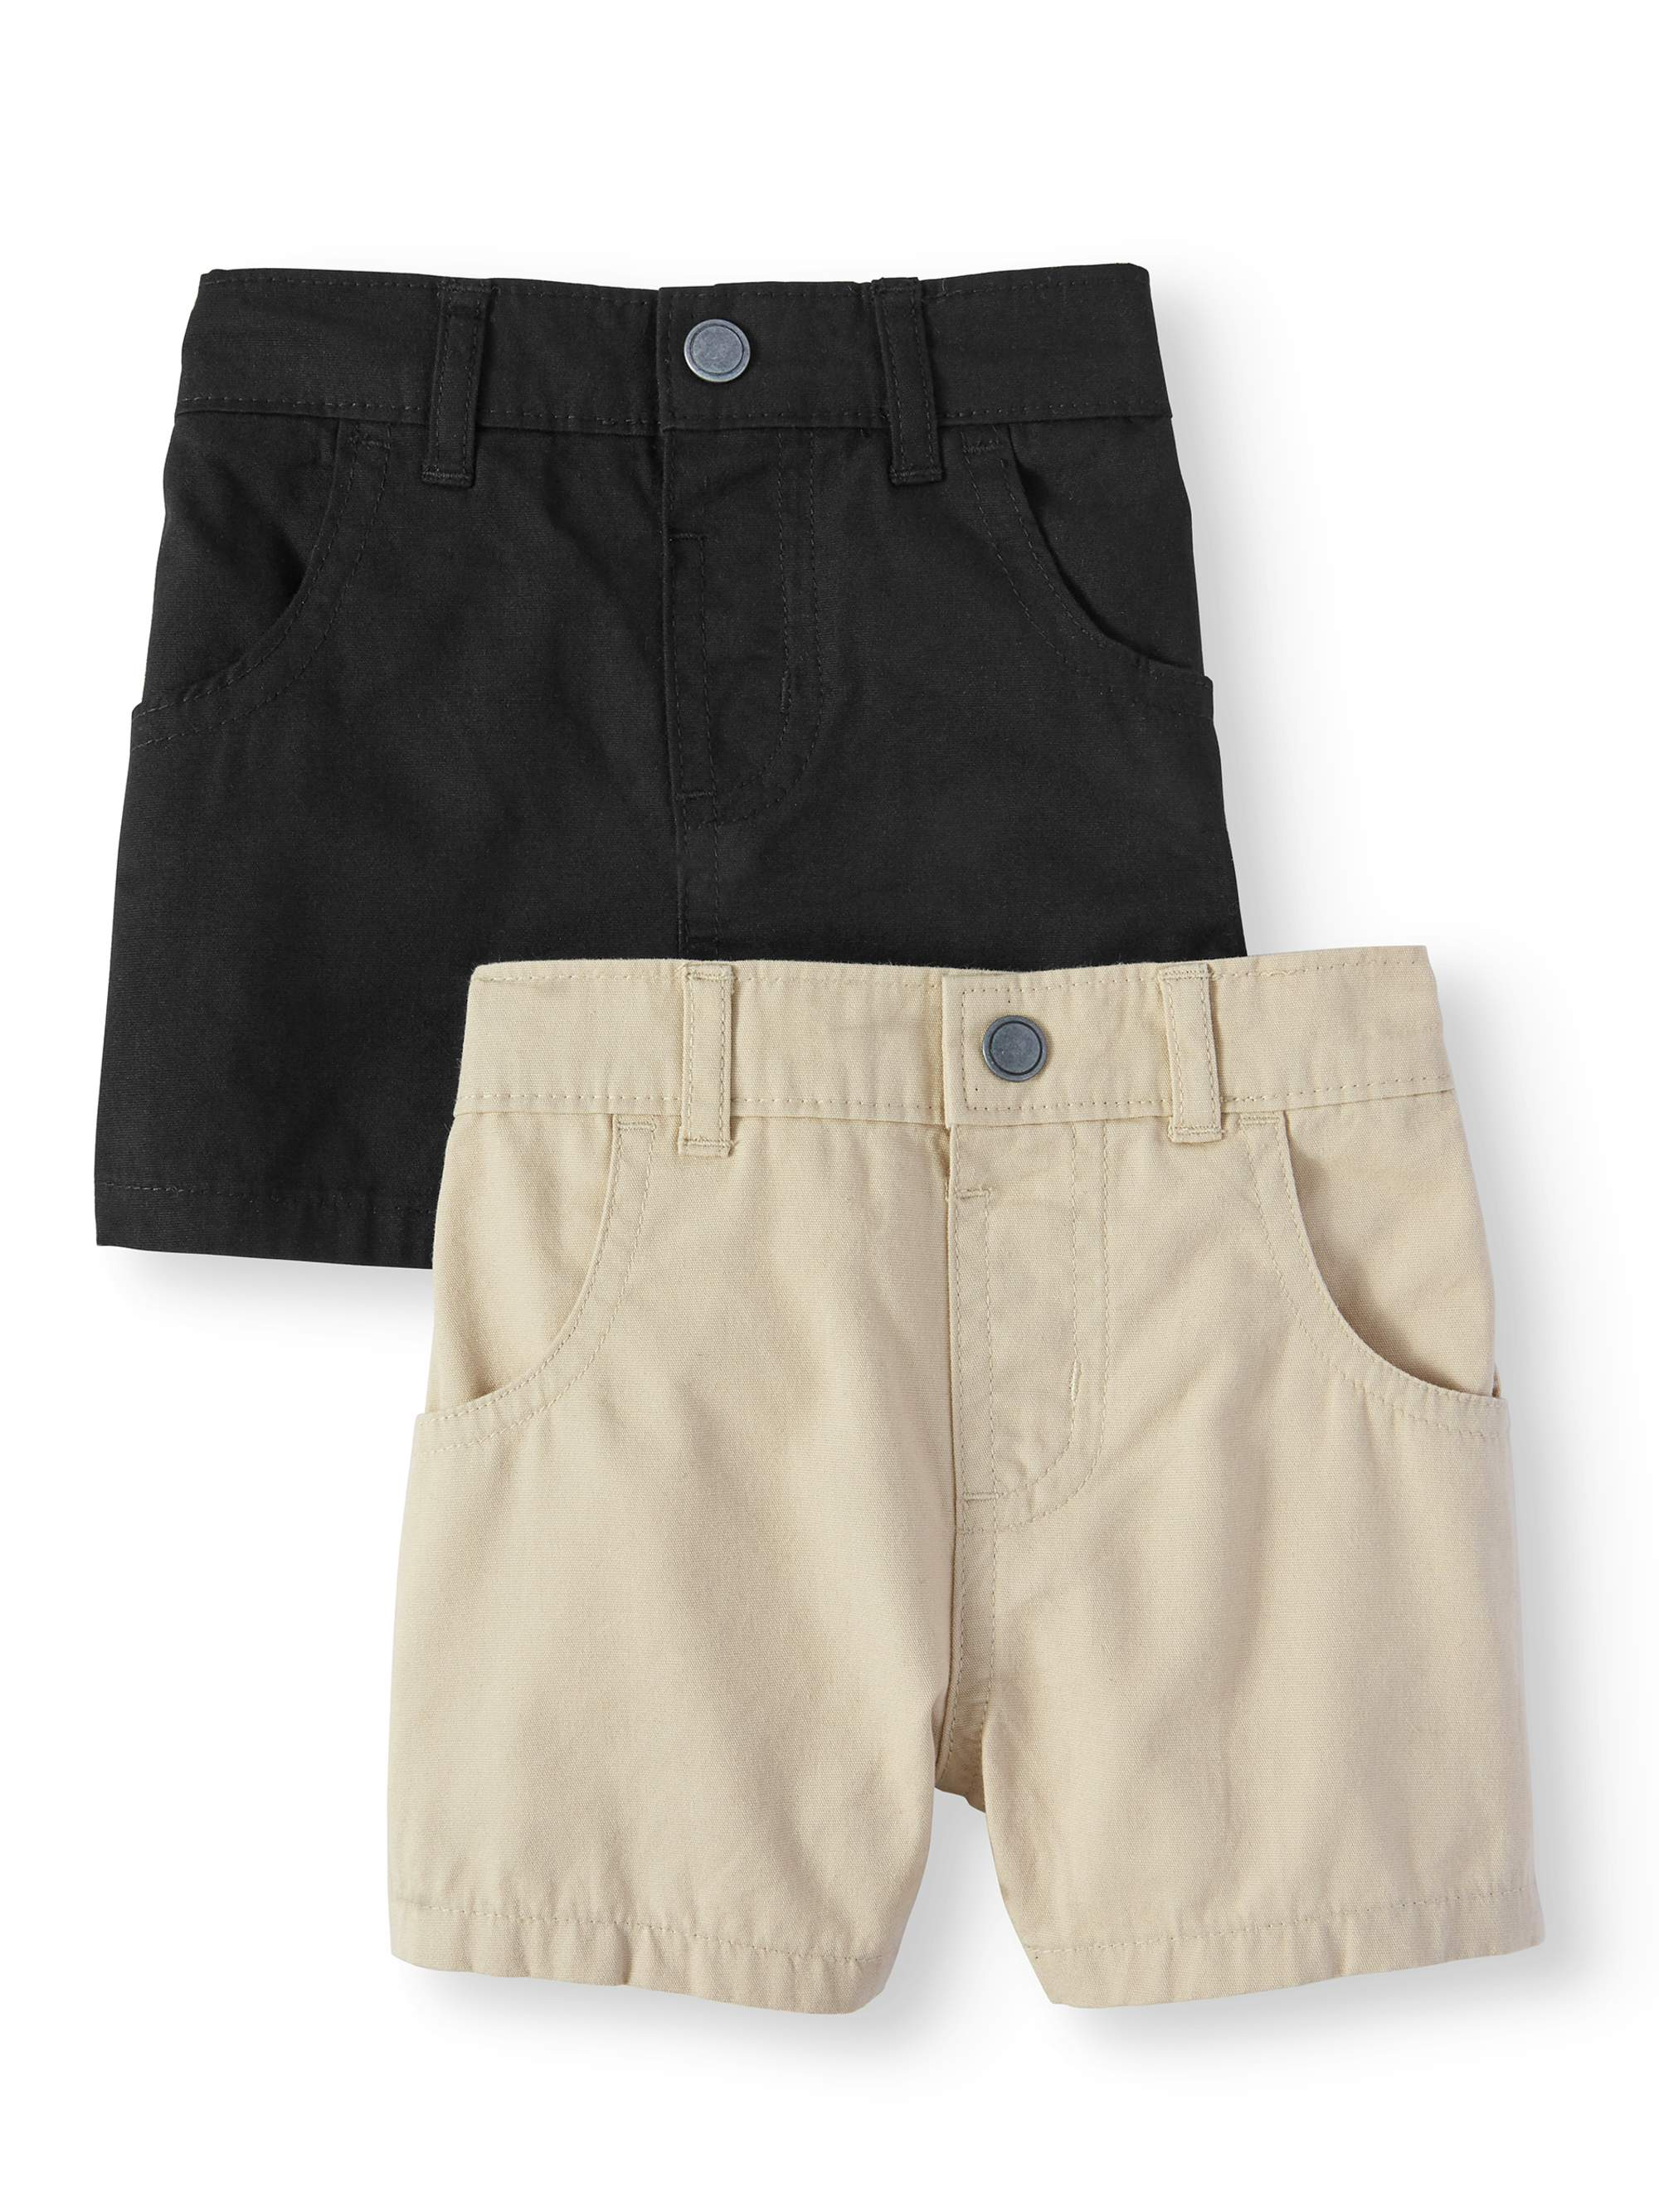 Pull-On Canvas Shorts, 2pc Multi-Pack (Baby Boys)